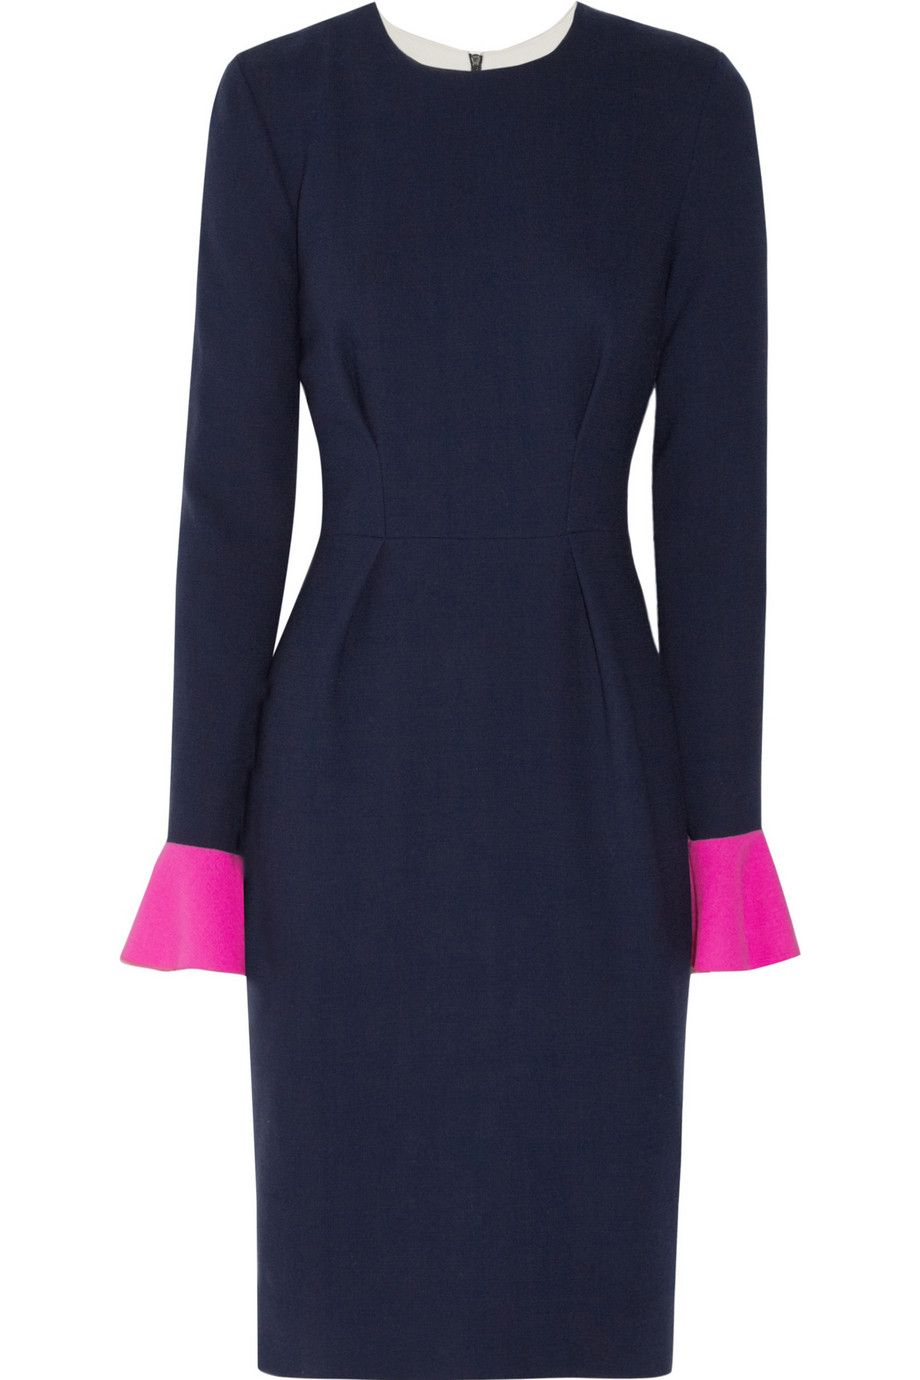 Le Meilleur Roksanda Ilincic Izumi Color Block Wool Crepe Dress Ce Mois Ci